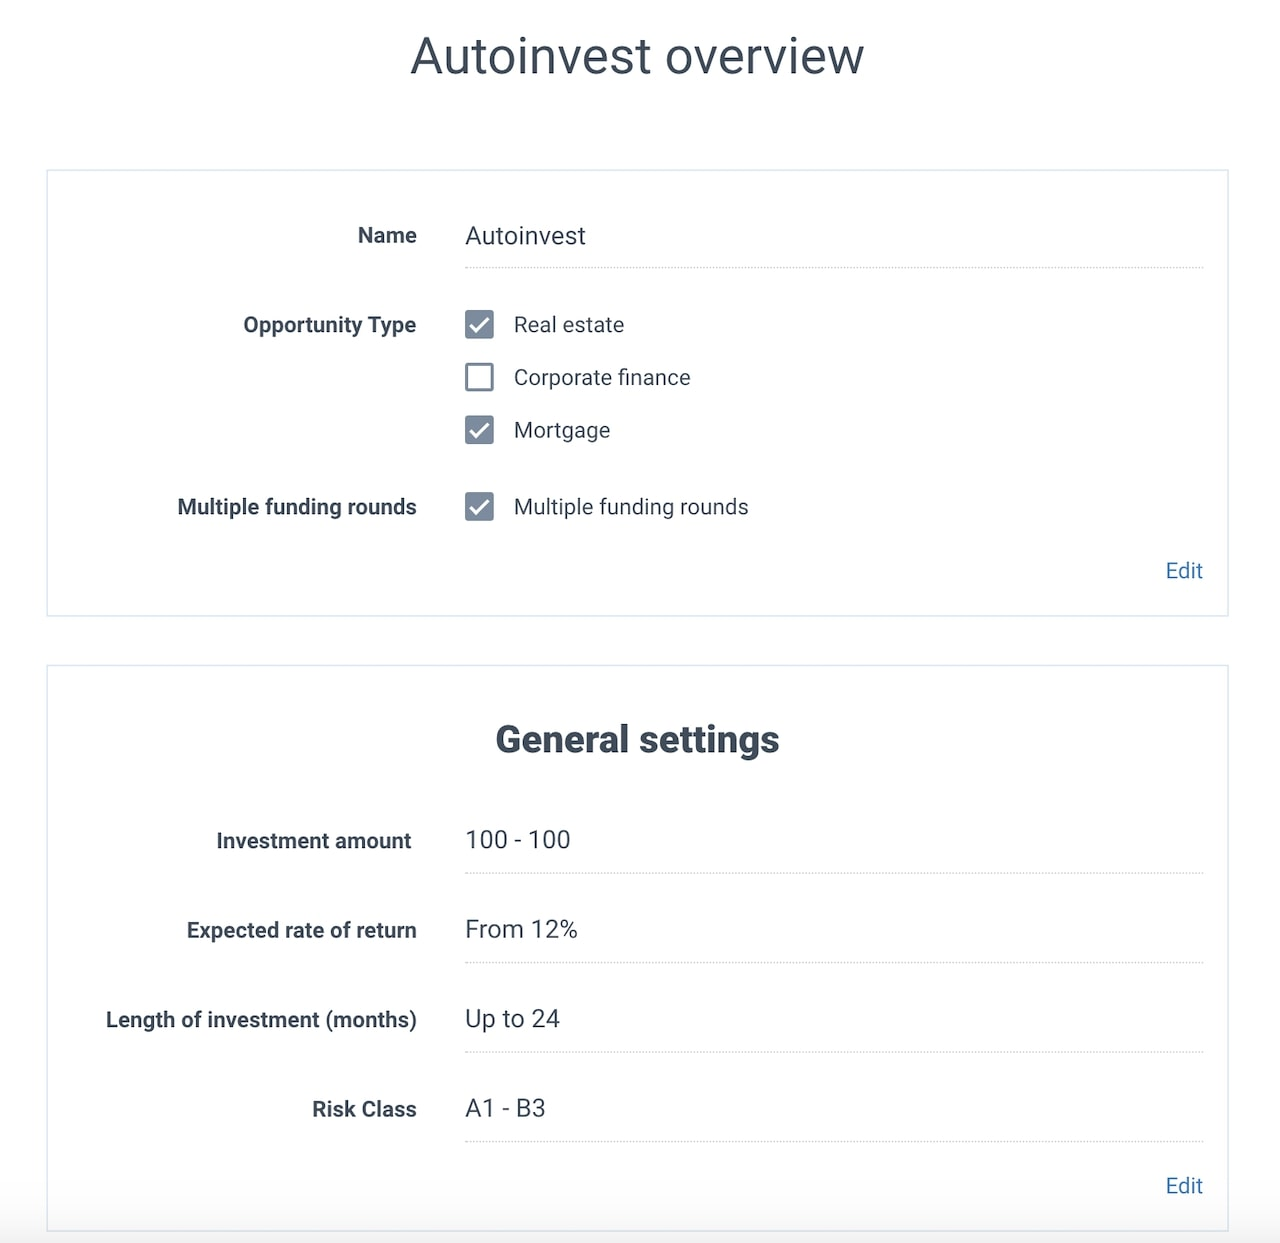 Auto investing overview and general settings